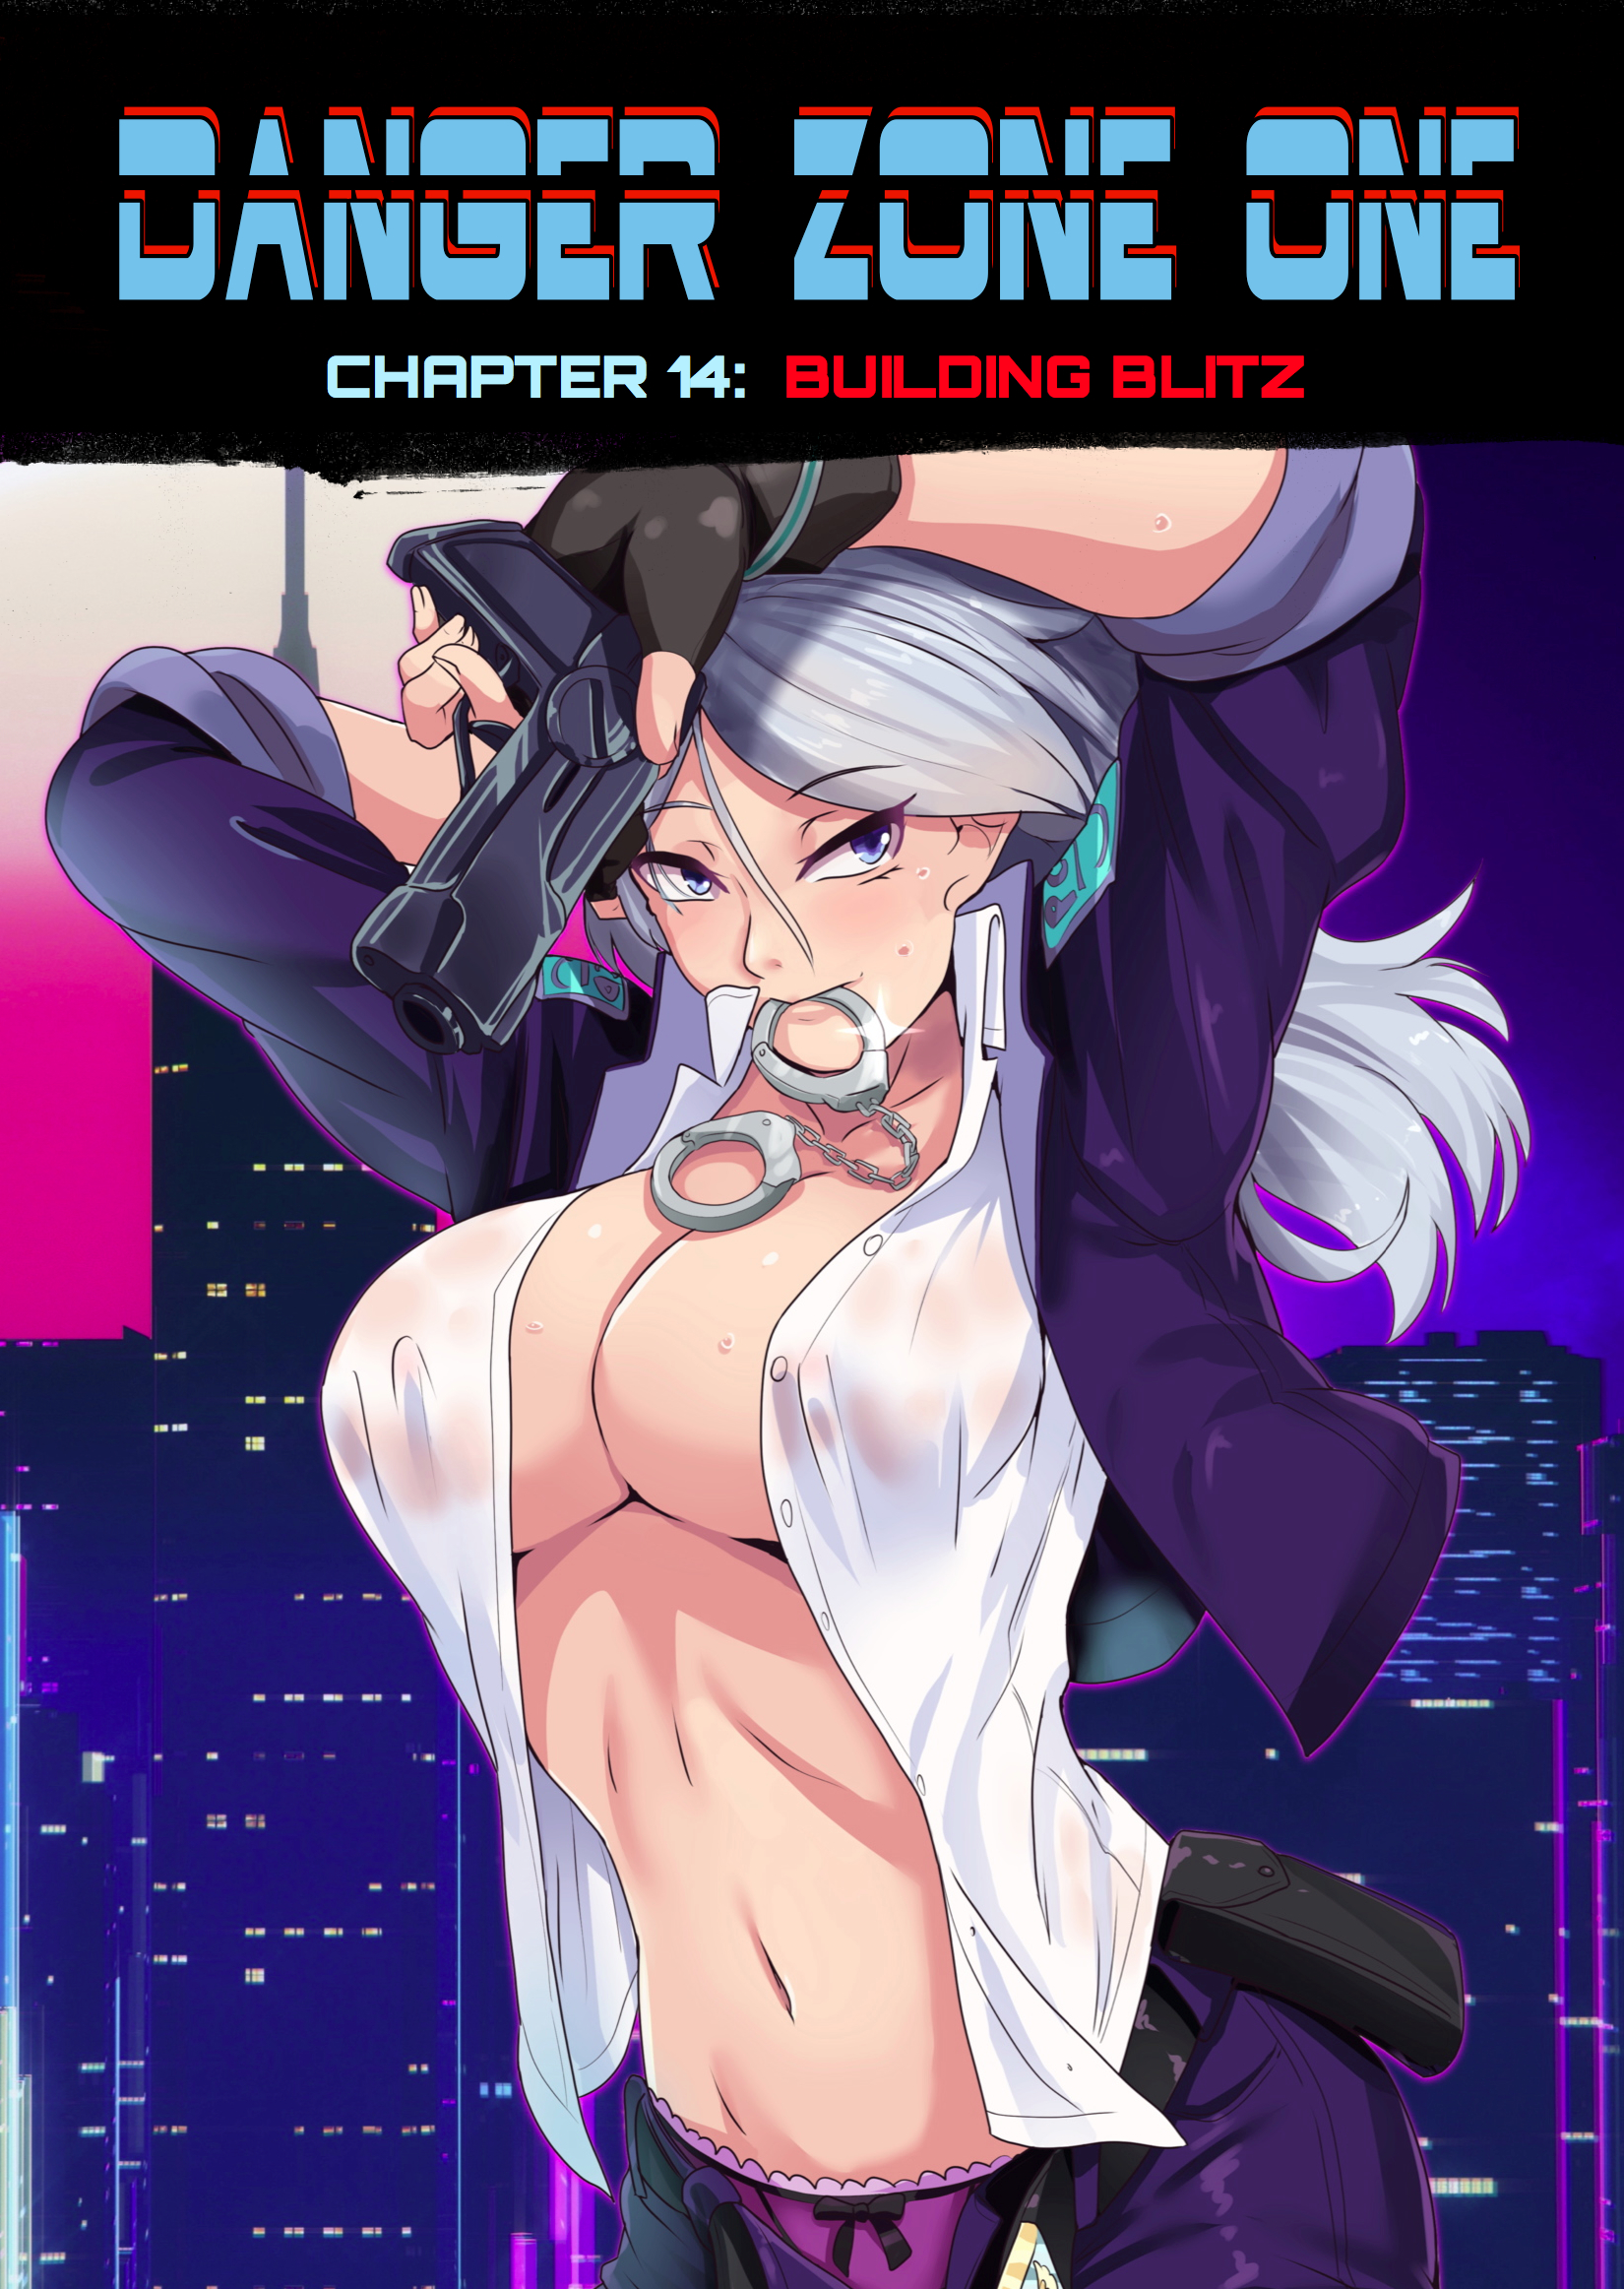 Danger Zone One Chapter 14